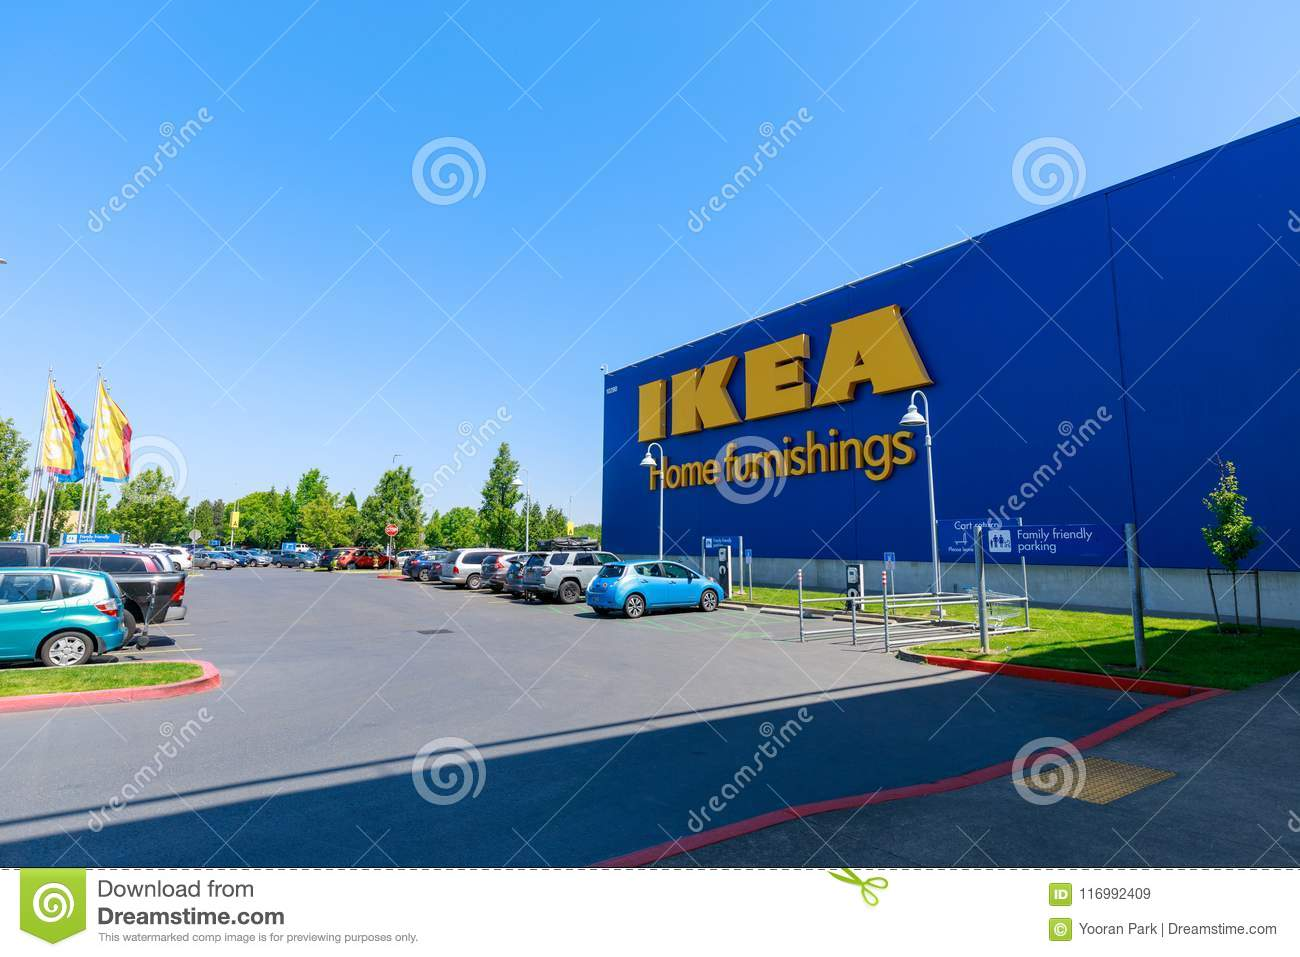 Catalogue Ikea Mulhouse Furniture Retailer Stock Images Download 2 669 Royalty Free Photos